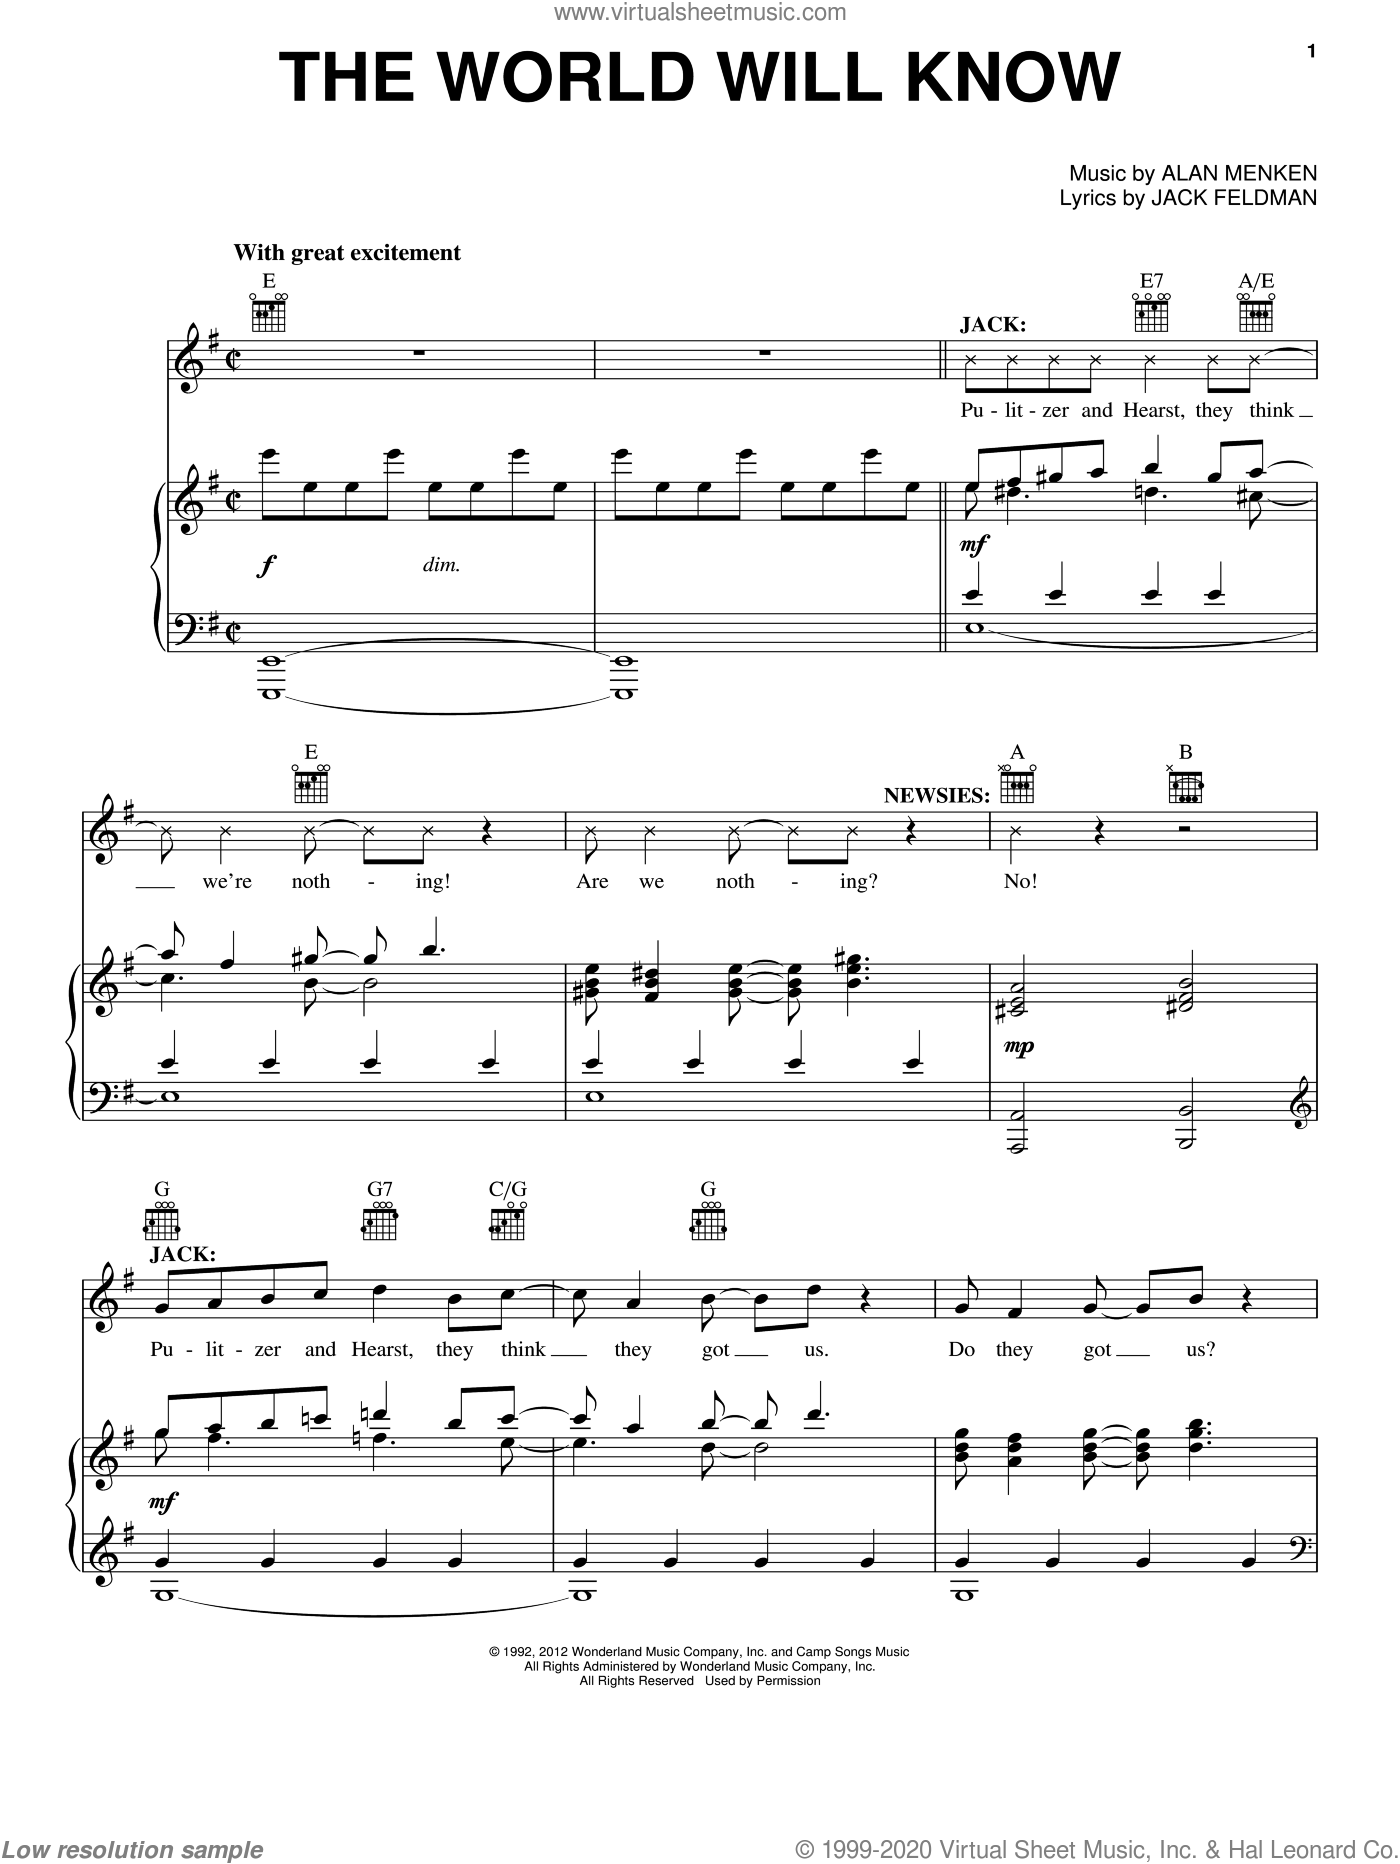 The World Will Know sheet music for voice, piano or guitar by Alan Menken and Jack Feldman. Score Image Preview.